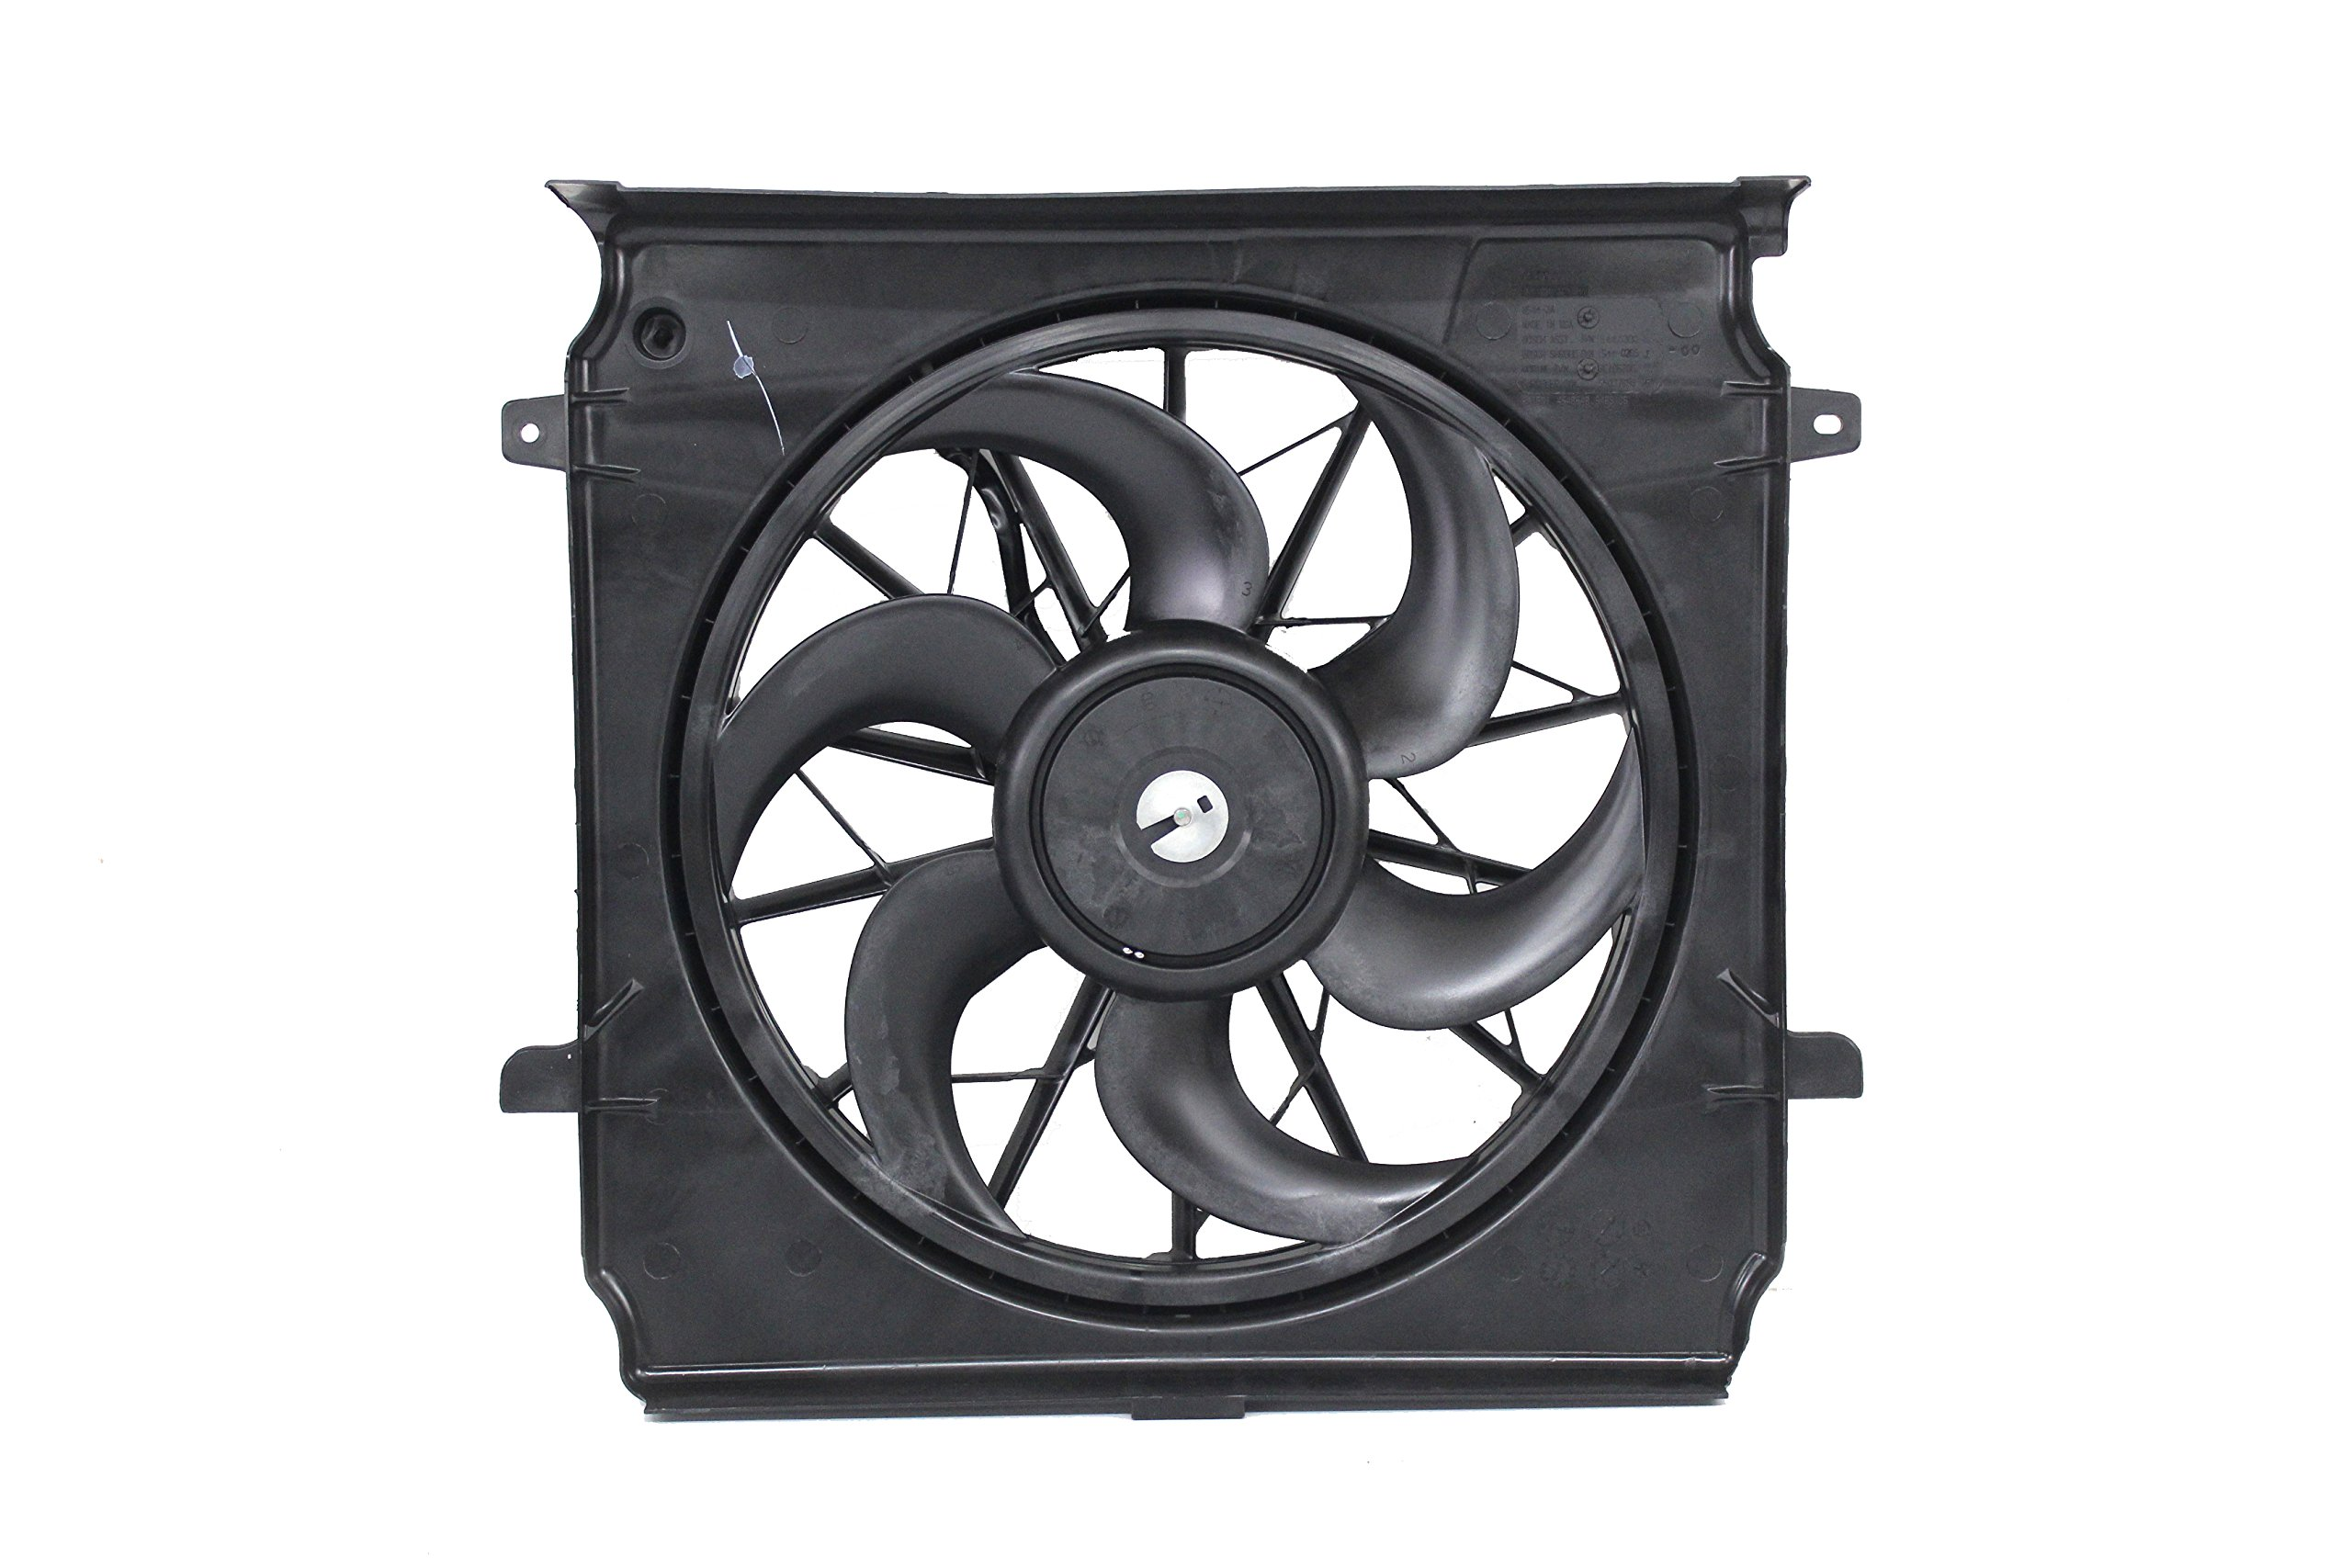 Genuine Chrysler Parts 55037659AA Radiator Cooling Fan Assembly by Chrysler (Image #2)